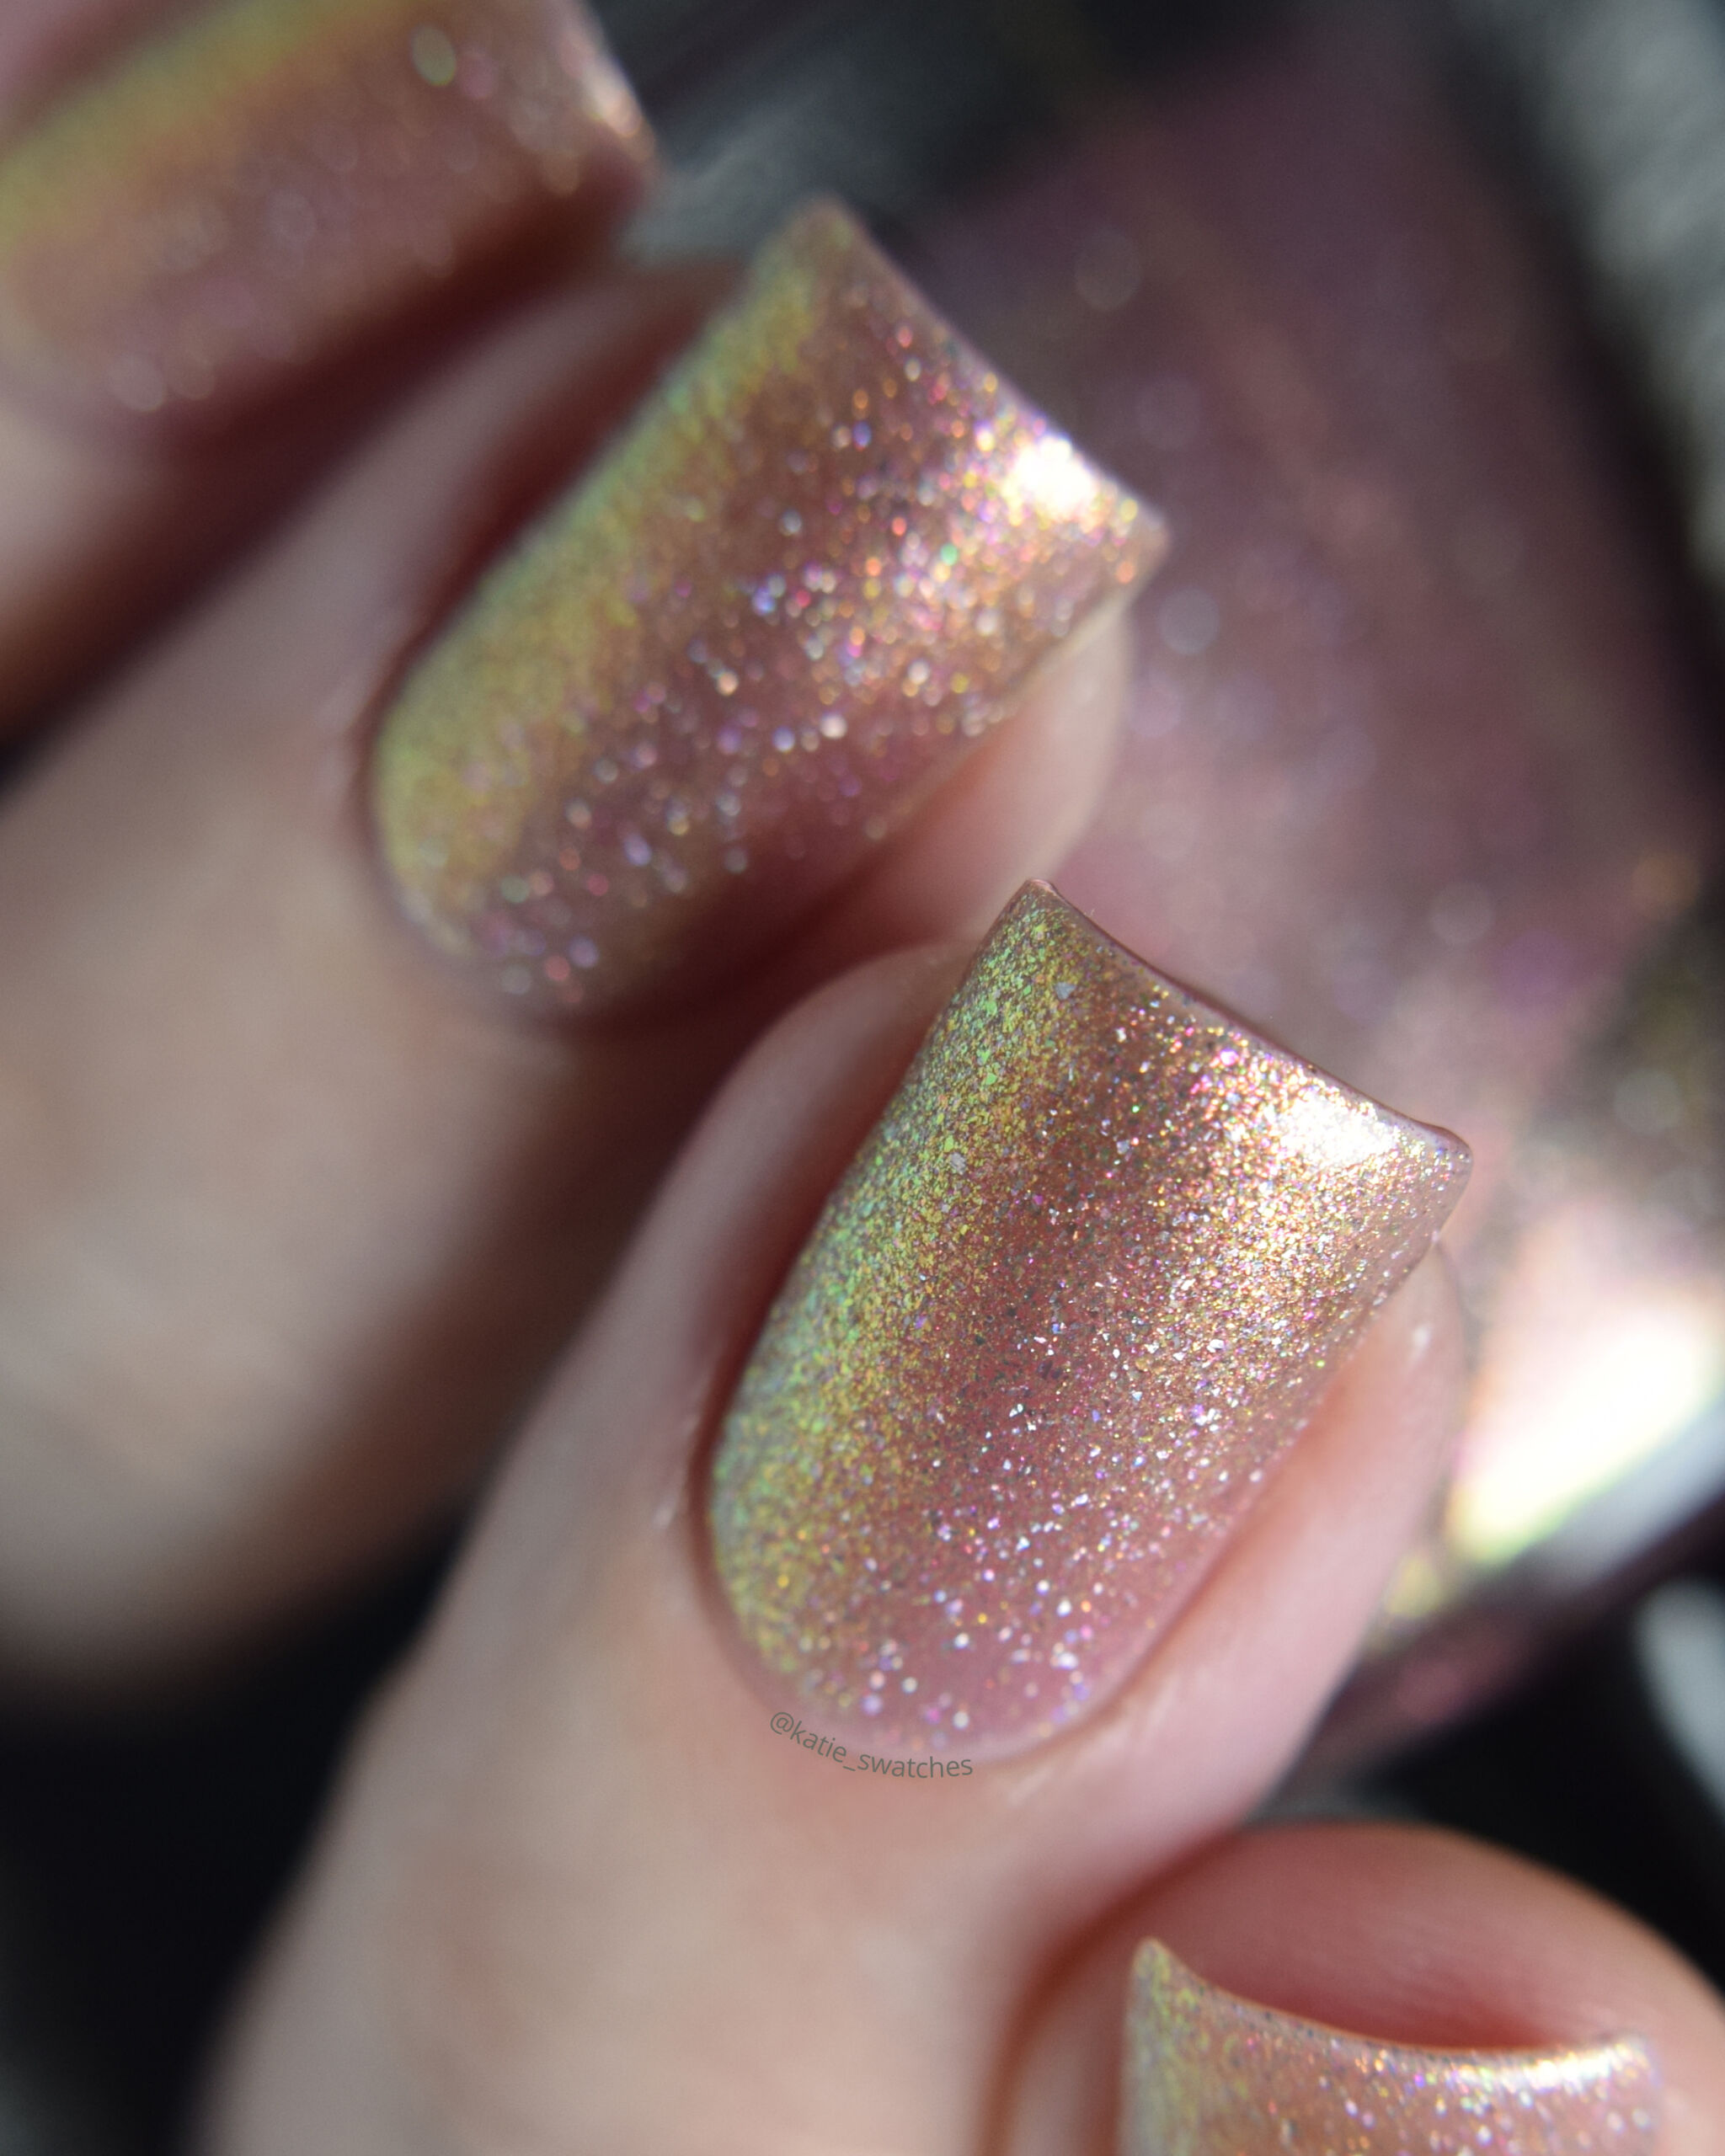 Girly Bits - Tangled shimmer nail polish swatch Polish Pickup PPU November 2019